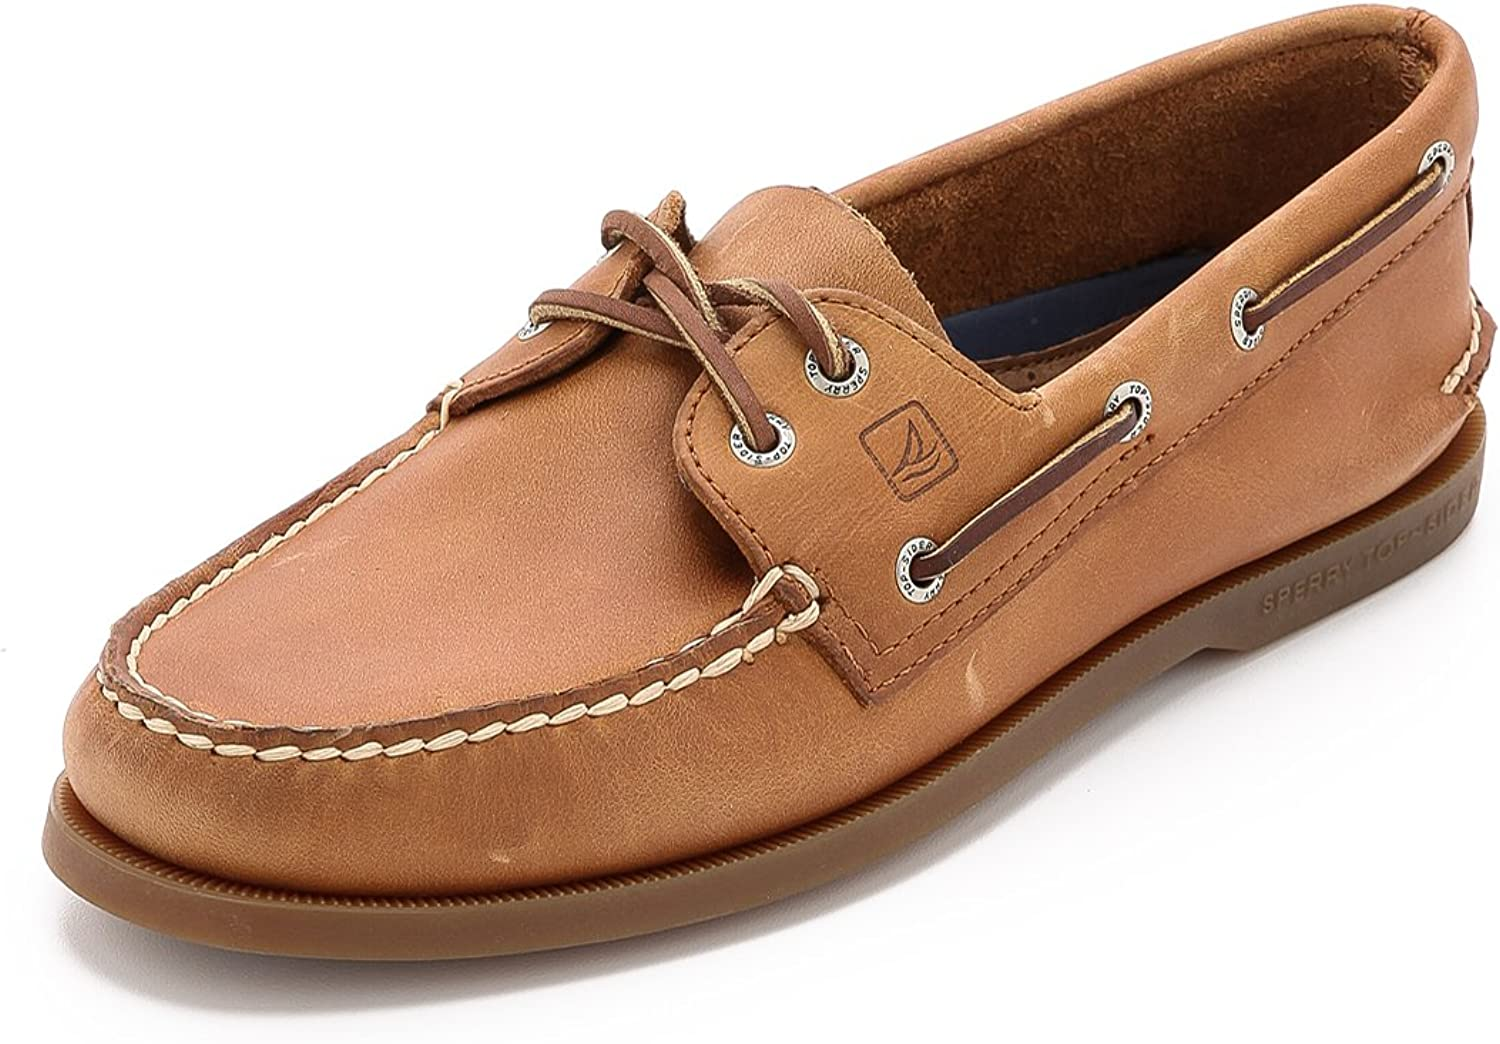 Sperry Top-Sider Men's A/O 2-Eye Boat